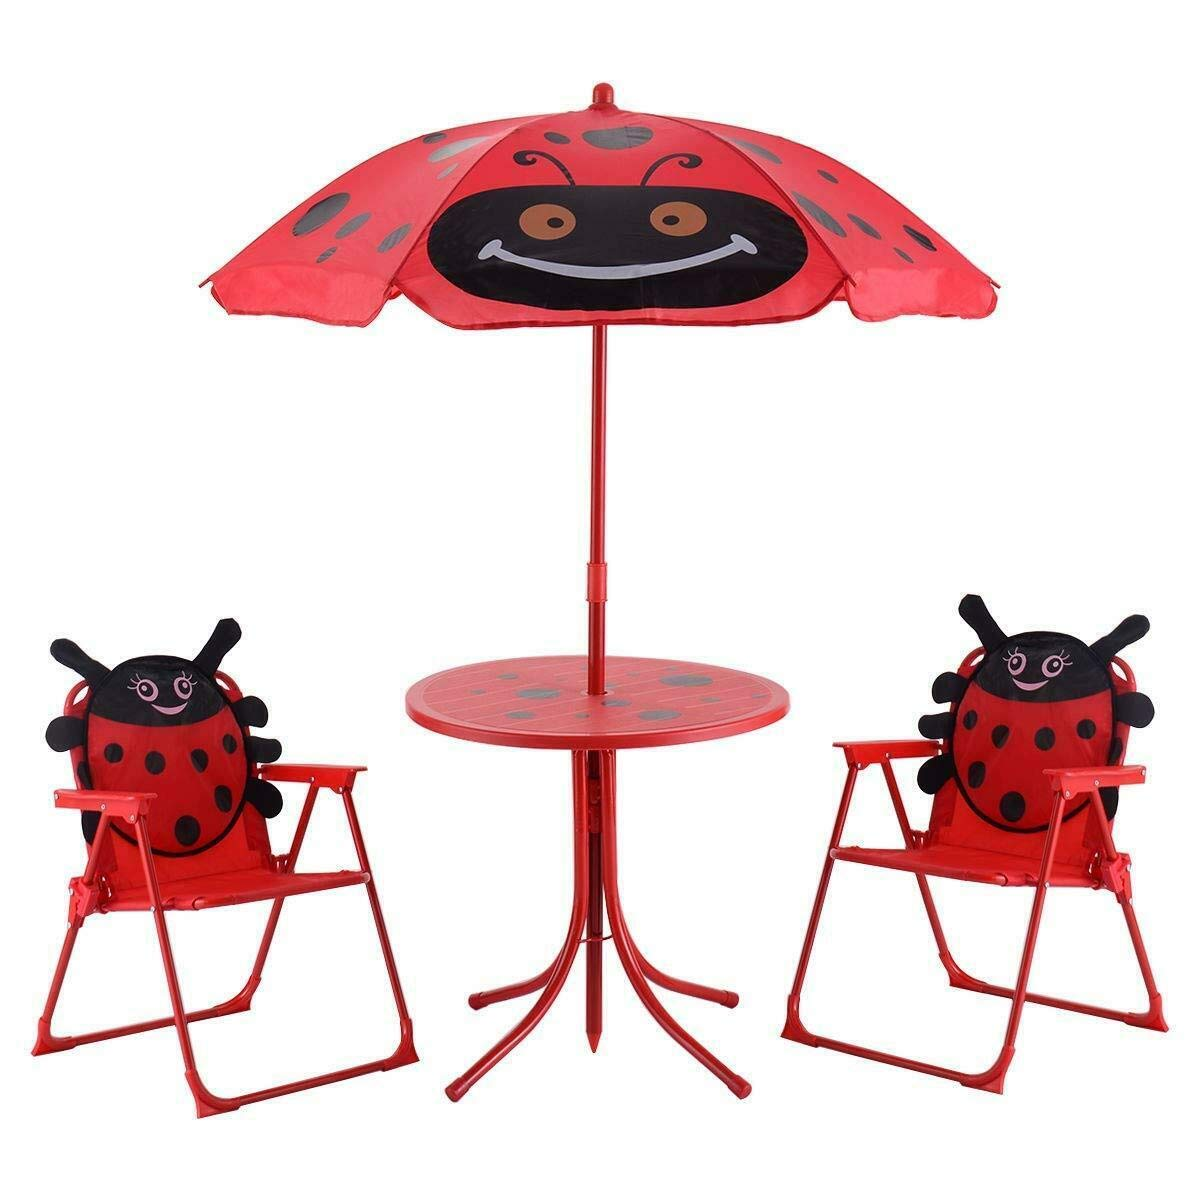 Set of 3 Red Beetle Ladybugs Pattern Kid Chair+Table+Umbrella Patio Garden Backyard Front yard Children Furniture Utility Kid room Foldable Easy Storage Light Weight Trip Party Event Picnic Home by Prettyshop4246 (Image #1)